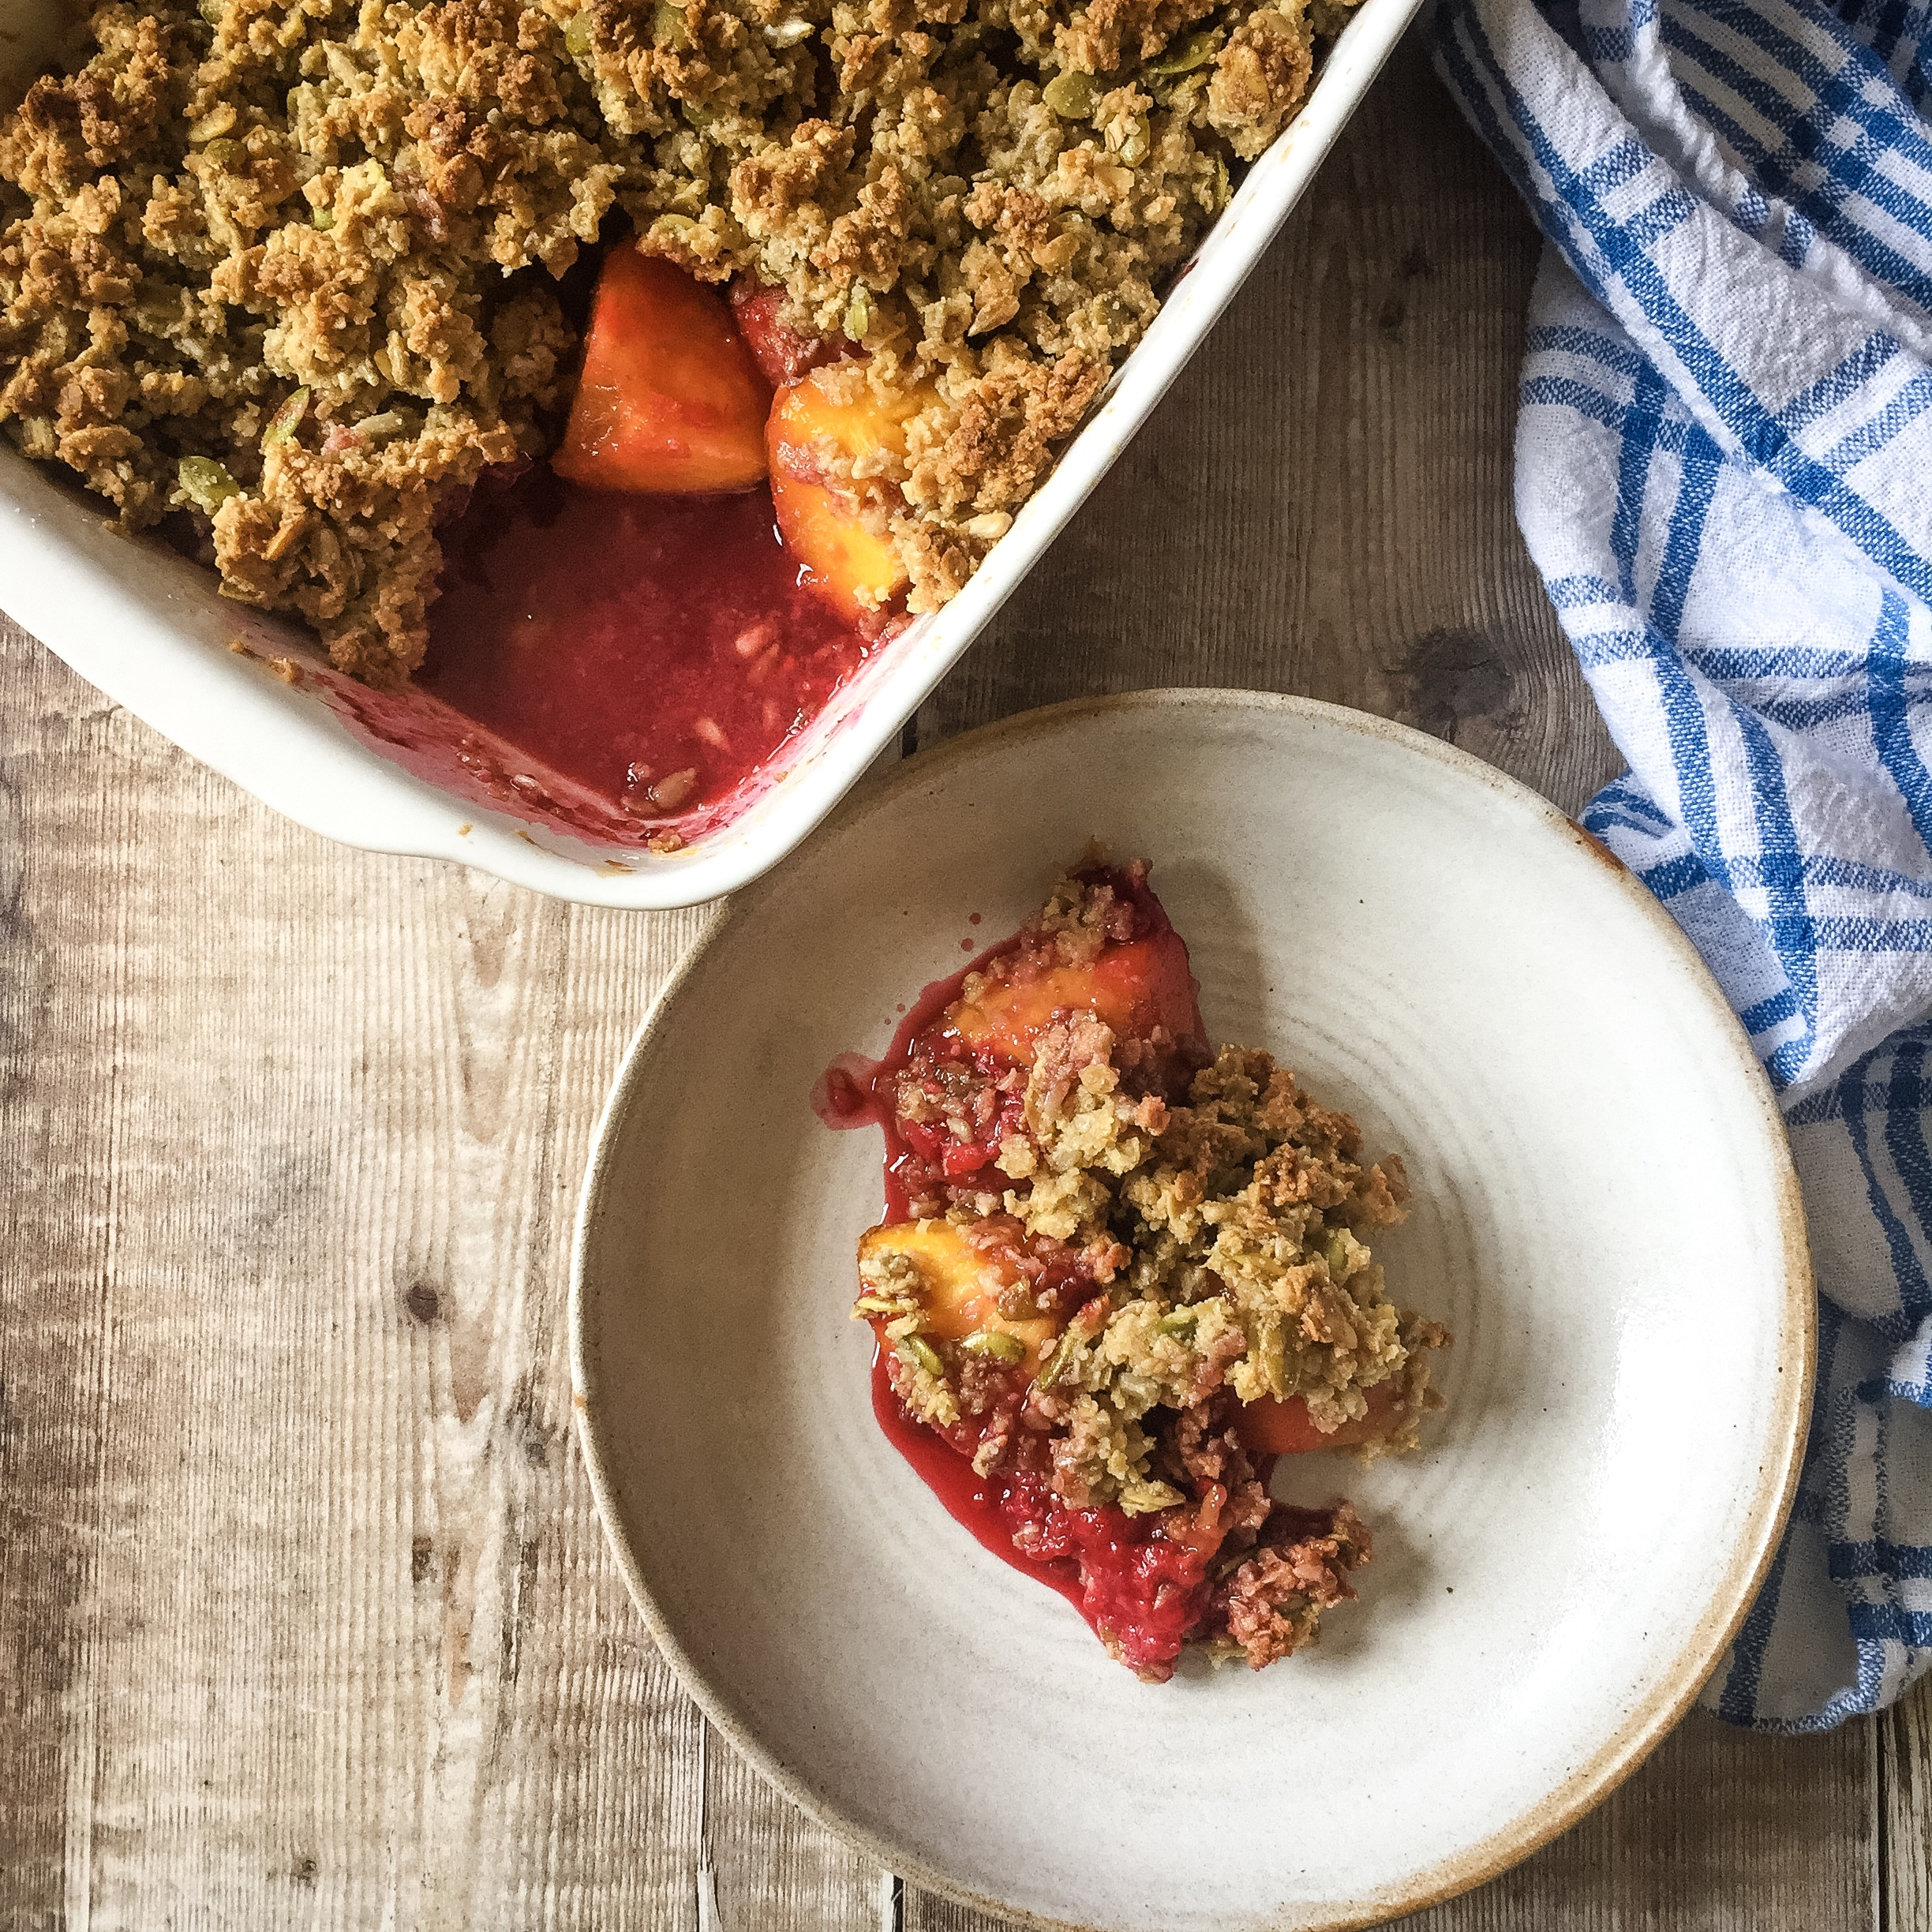 Peach & Raspberry Crumble